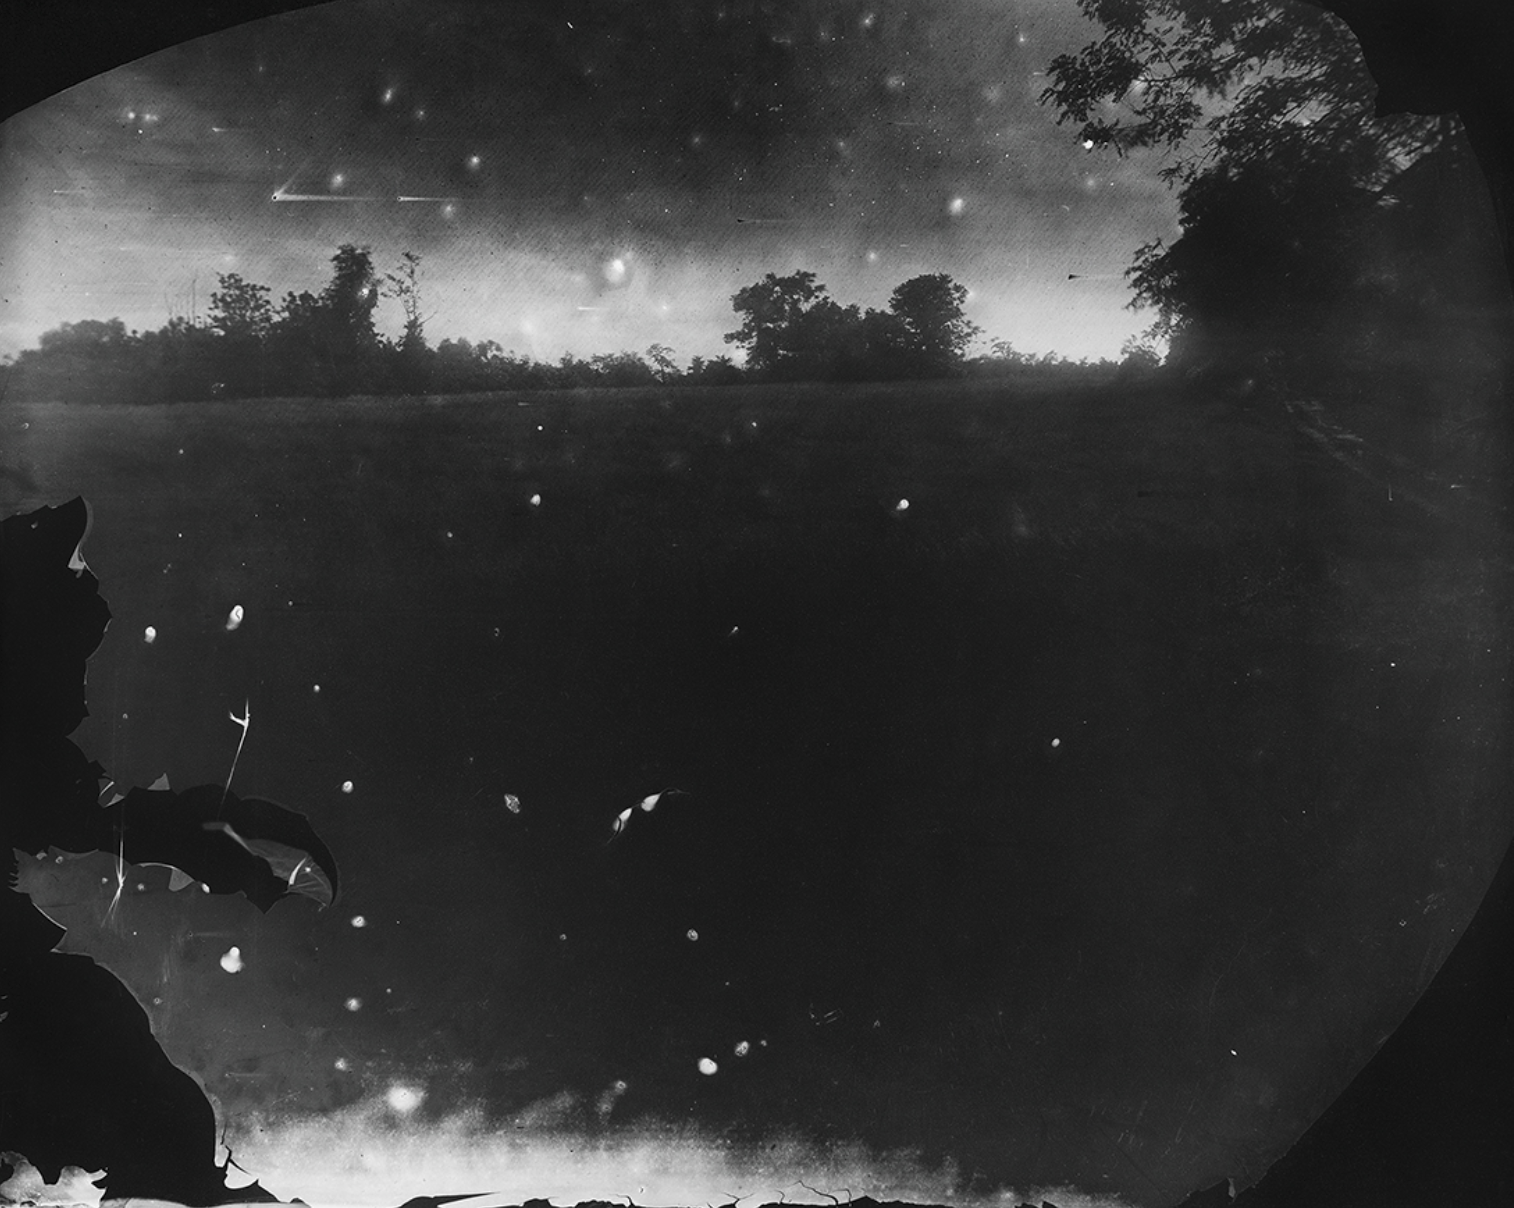 Battlefields, Antietam (Starry Night) 2001 Sally Mann Gelatin silver print. Alan Kirshner and Deborah Mihaloff Art Collection. © Sally Mann